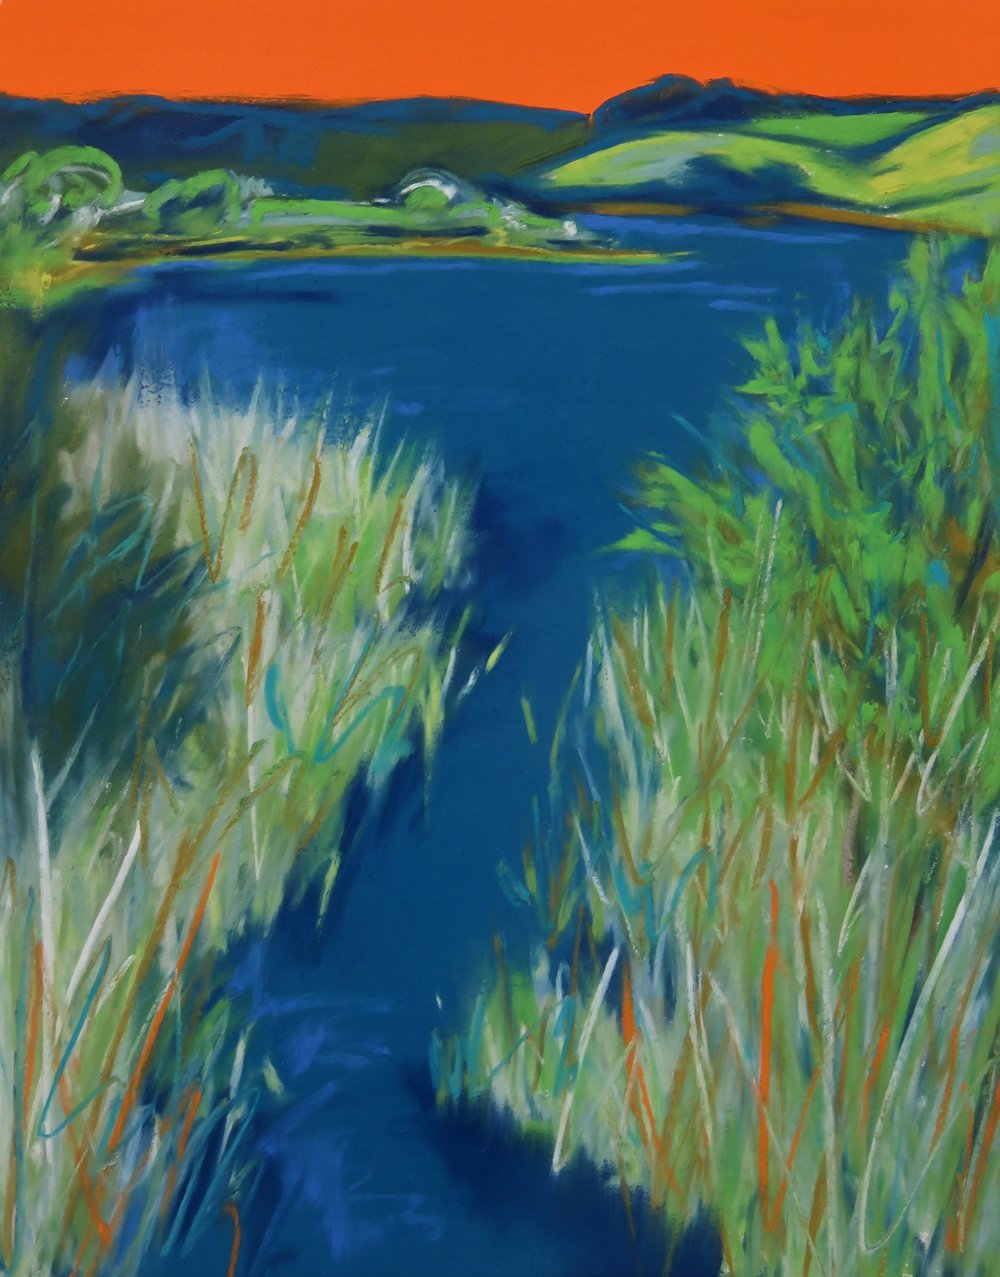 Across the Bridge - Slapton Ley (SOLD)